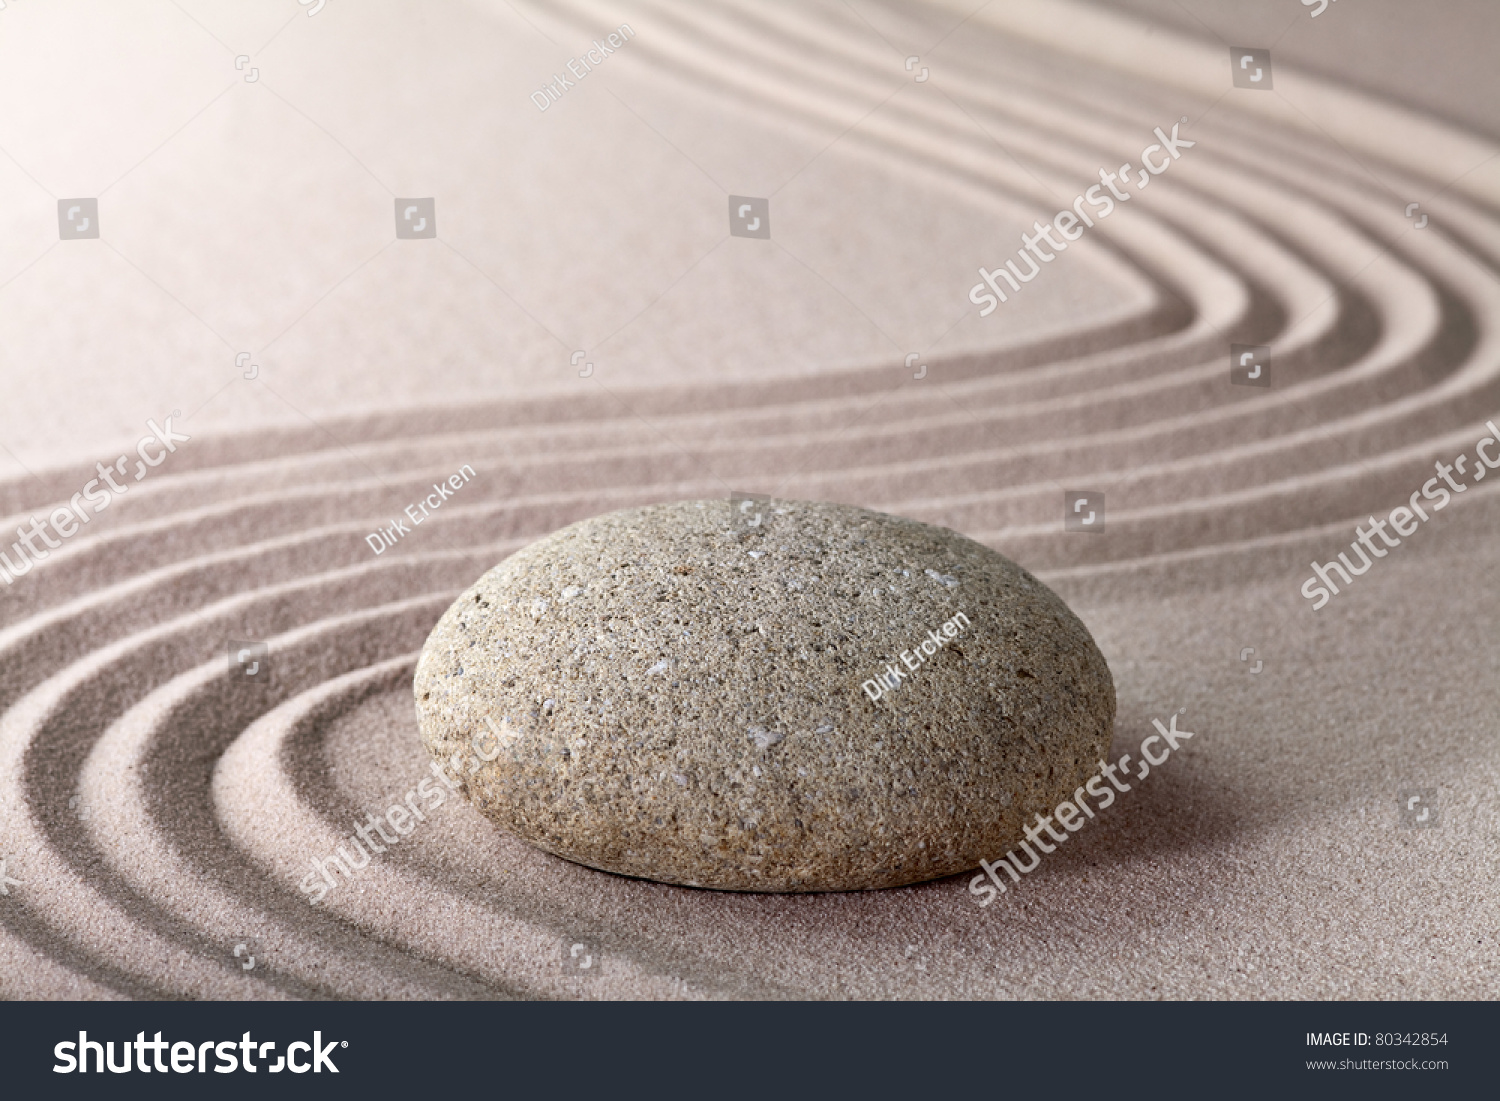 Japanese zen gardens top view - Relaxation Zen Garden Japanese Garden Zen Stock Photo 80342854